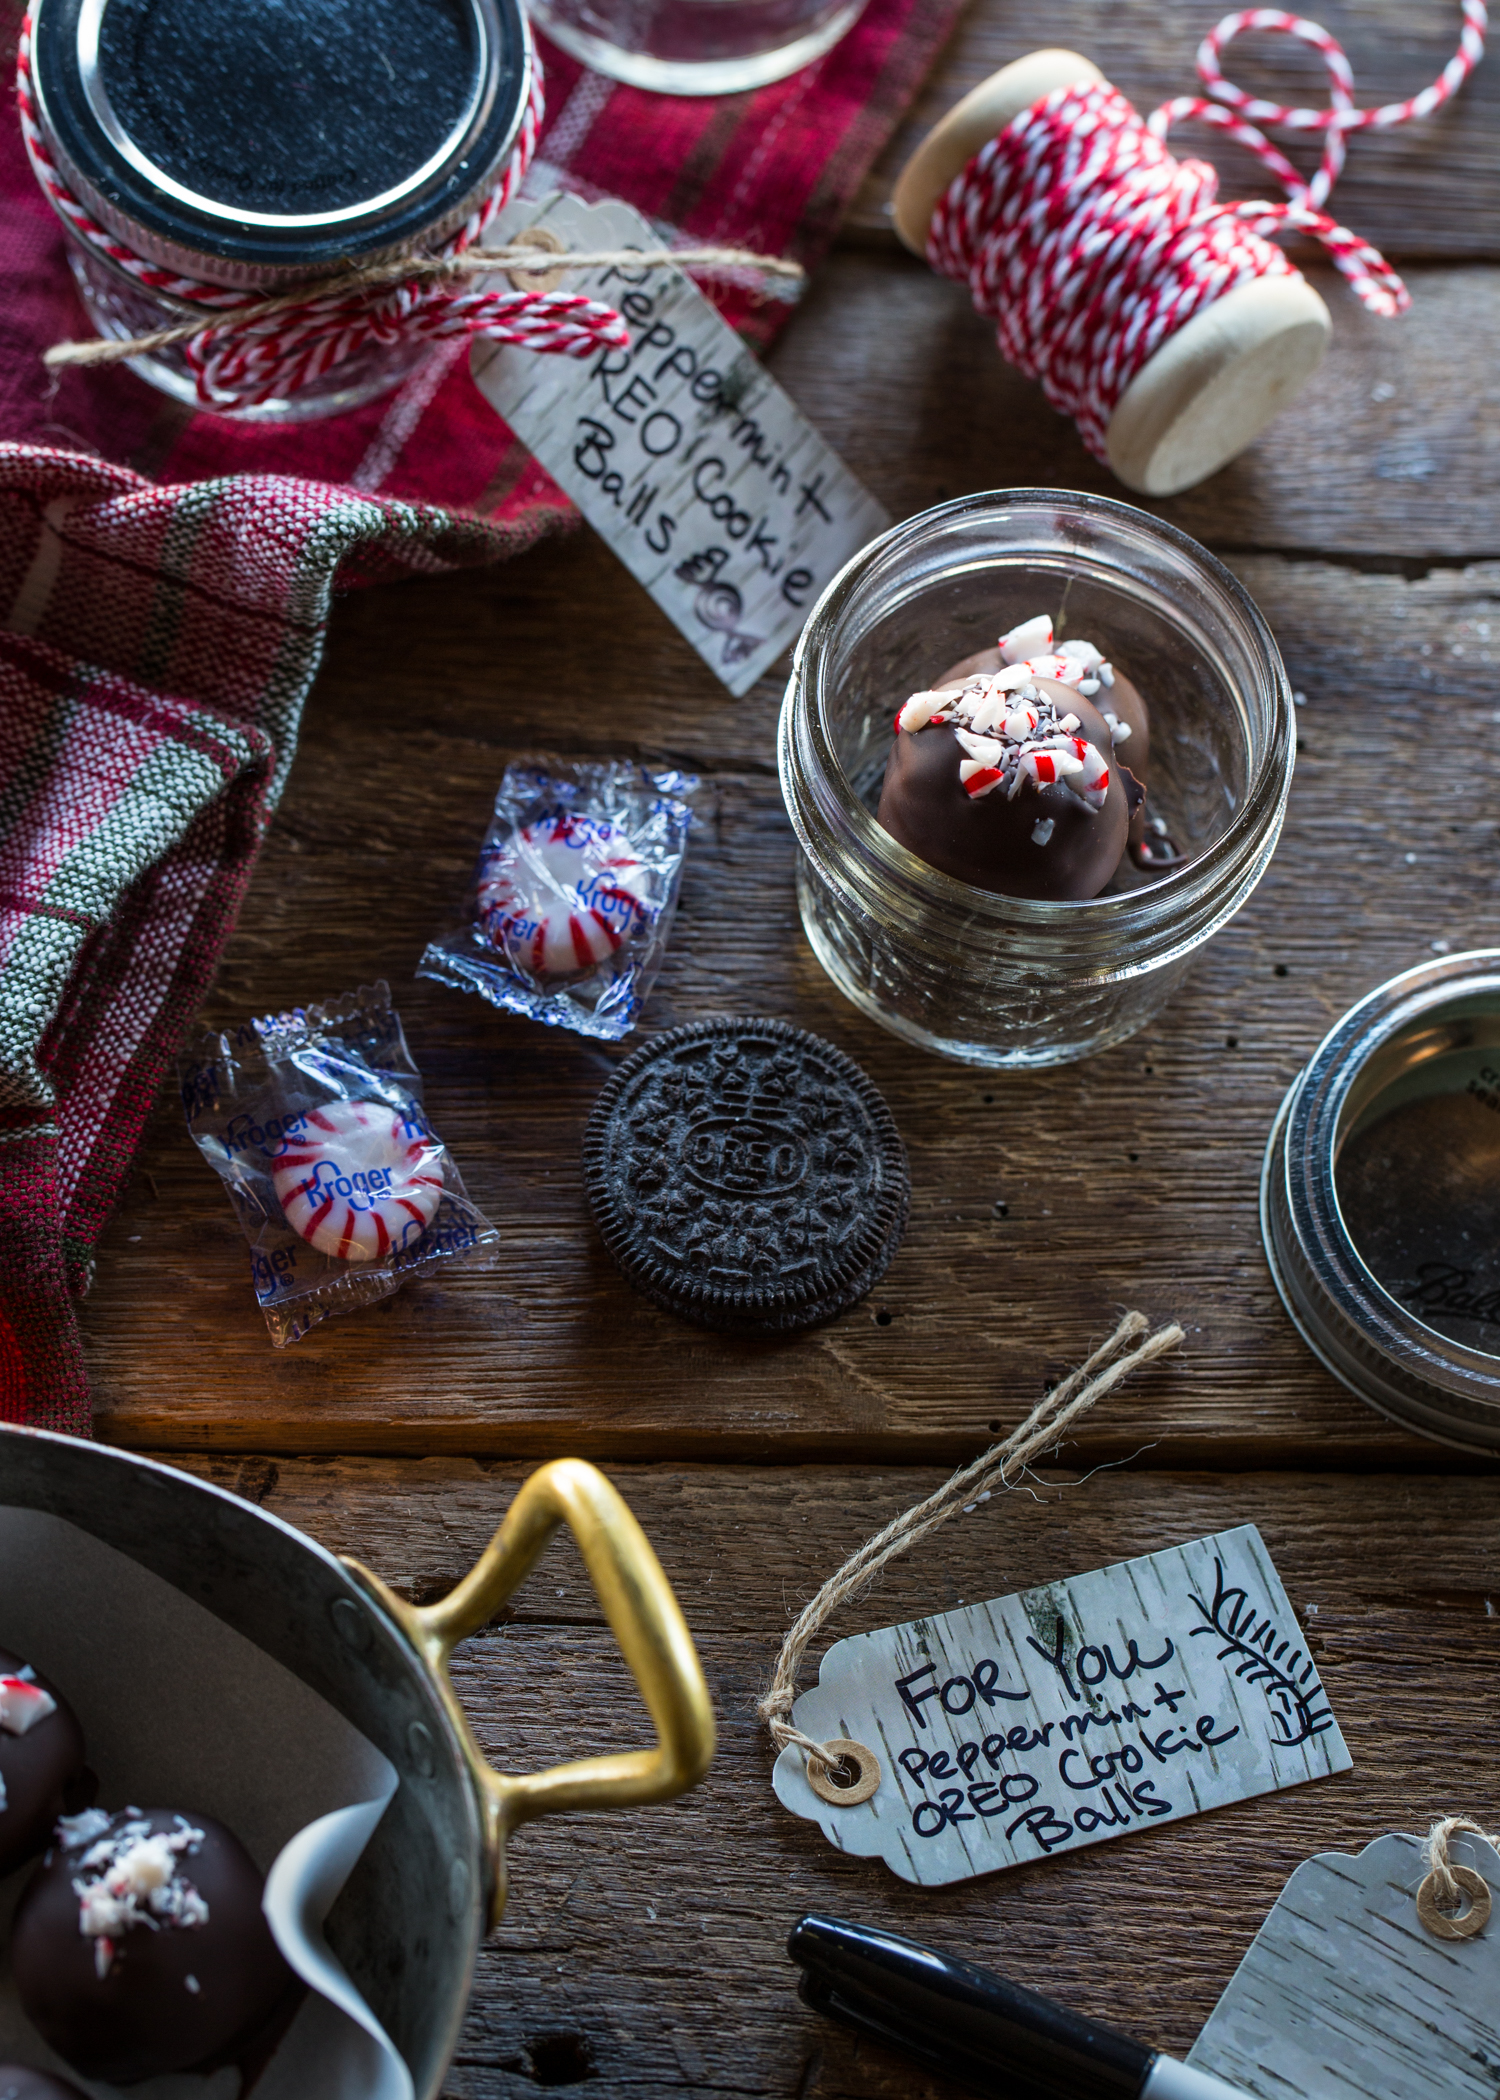 Peppermint OREO Cookie Balls make wonderful gifts when packaged in simple mason jars and decorated with ribbon. So cute!